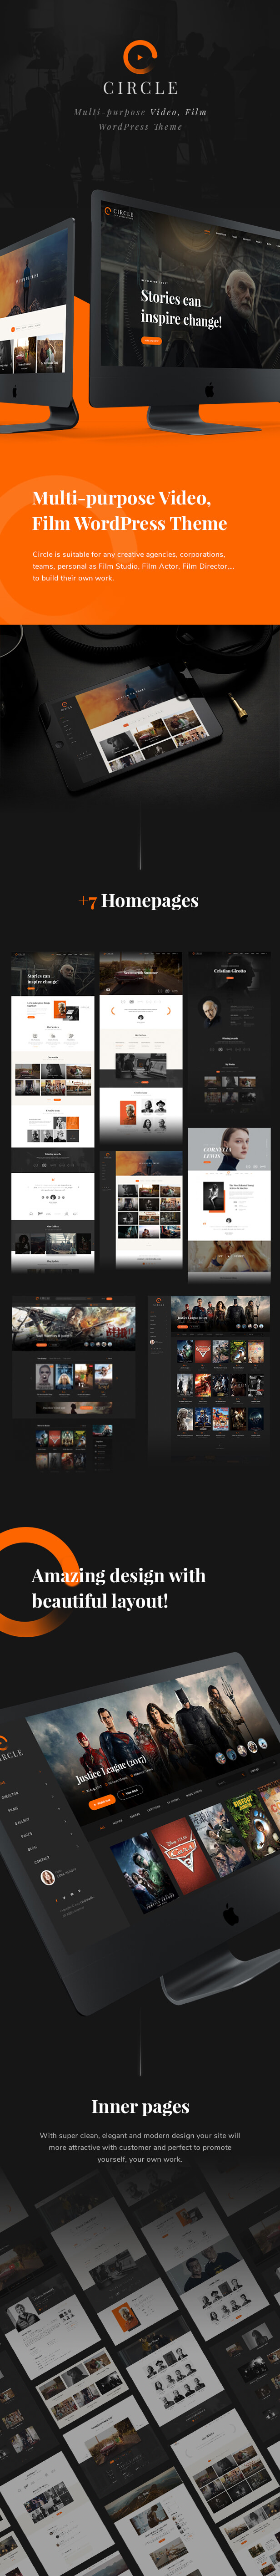 preview circle 01 - Circle - Filmmakers & Movie Studios WordPress theme